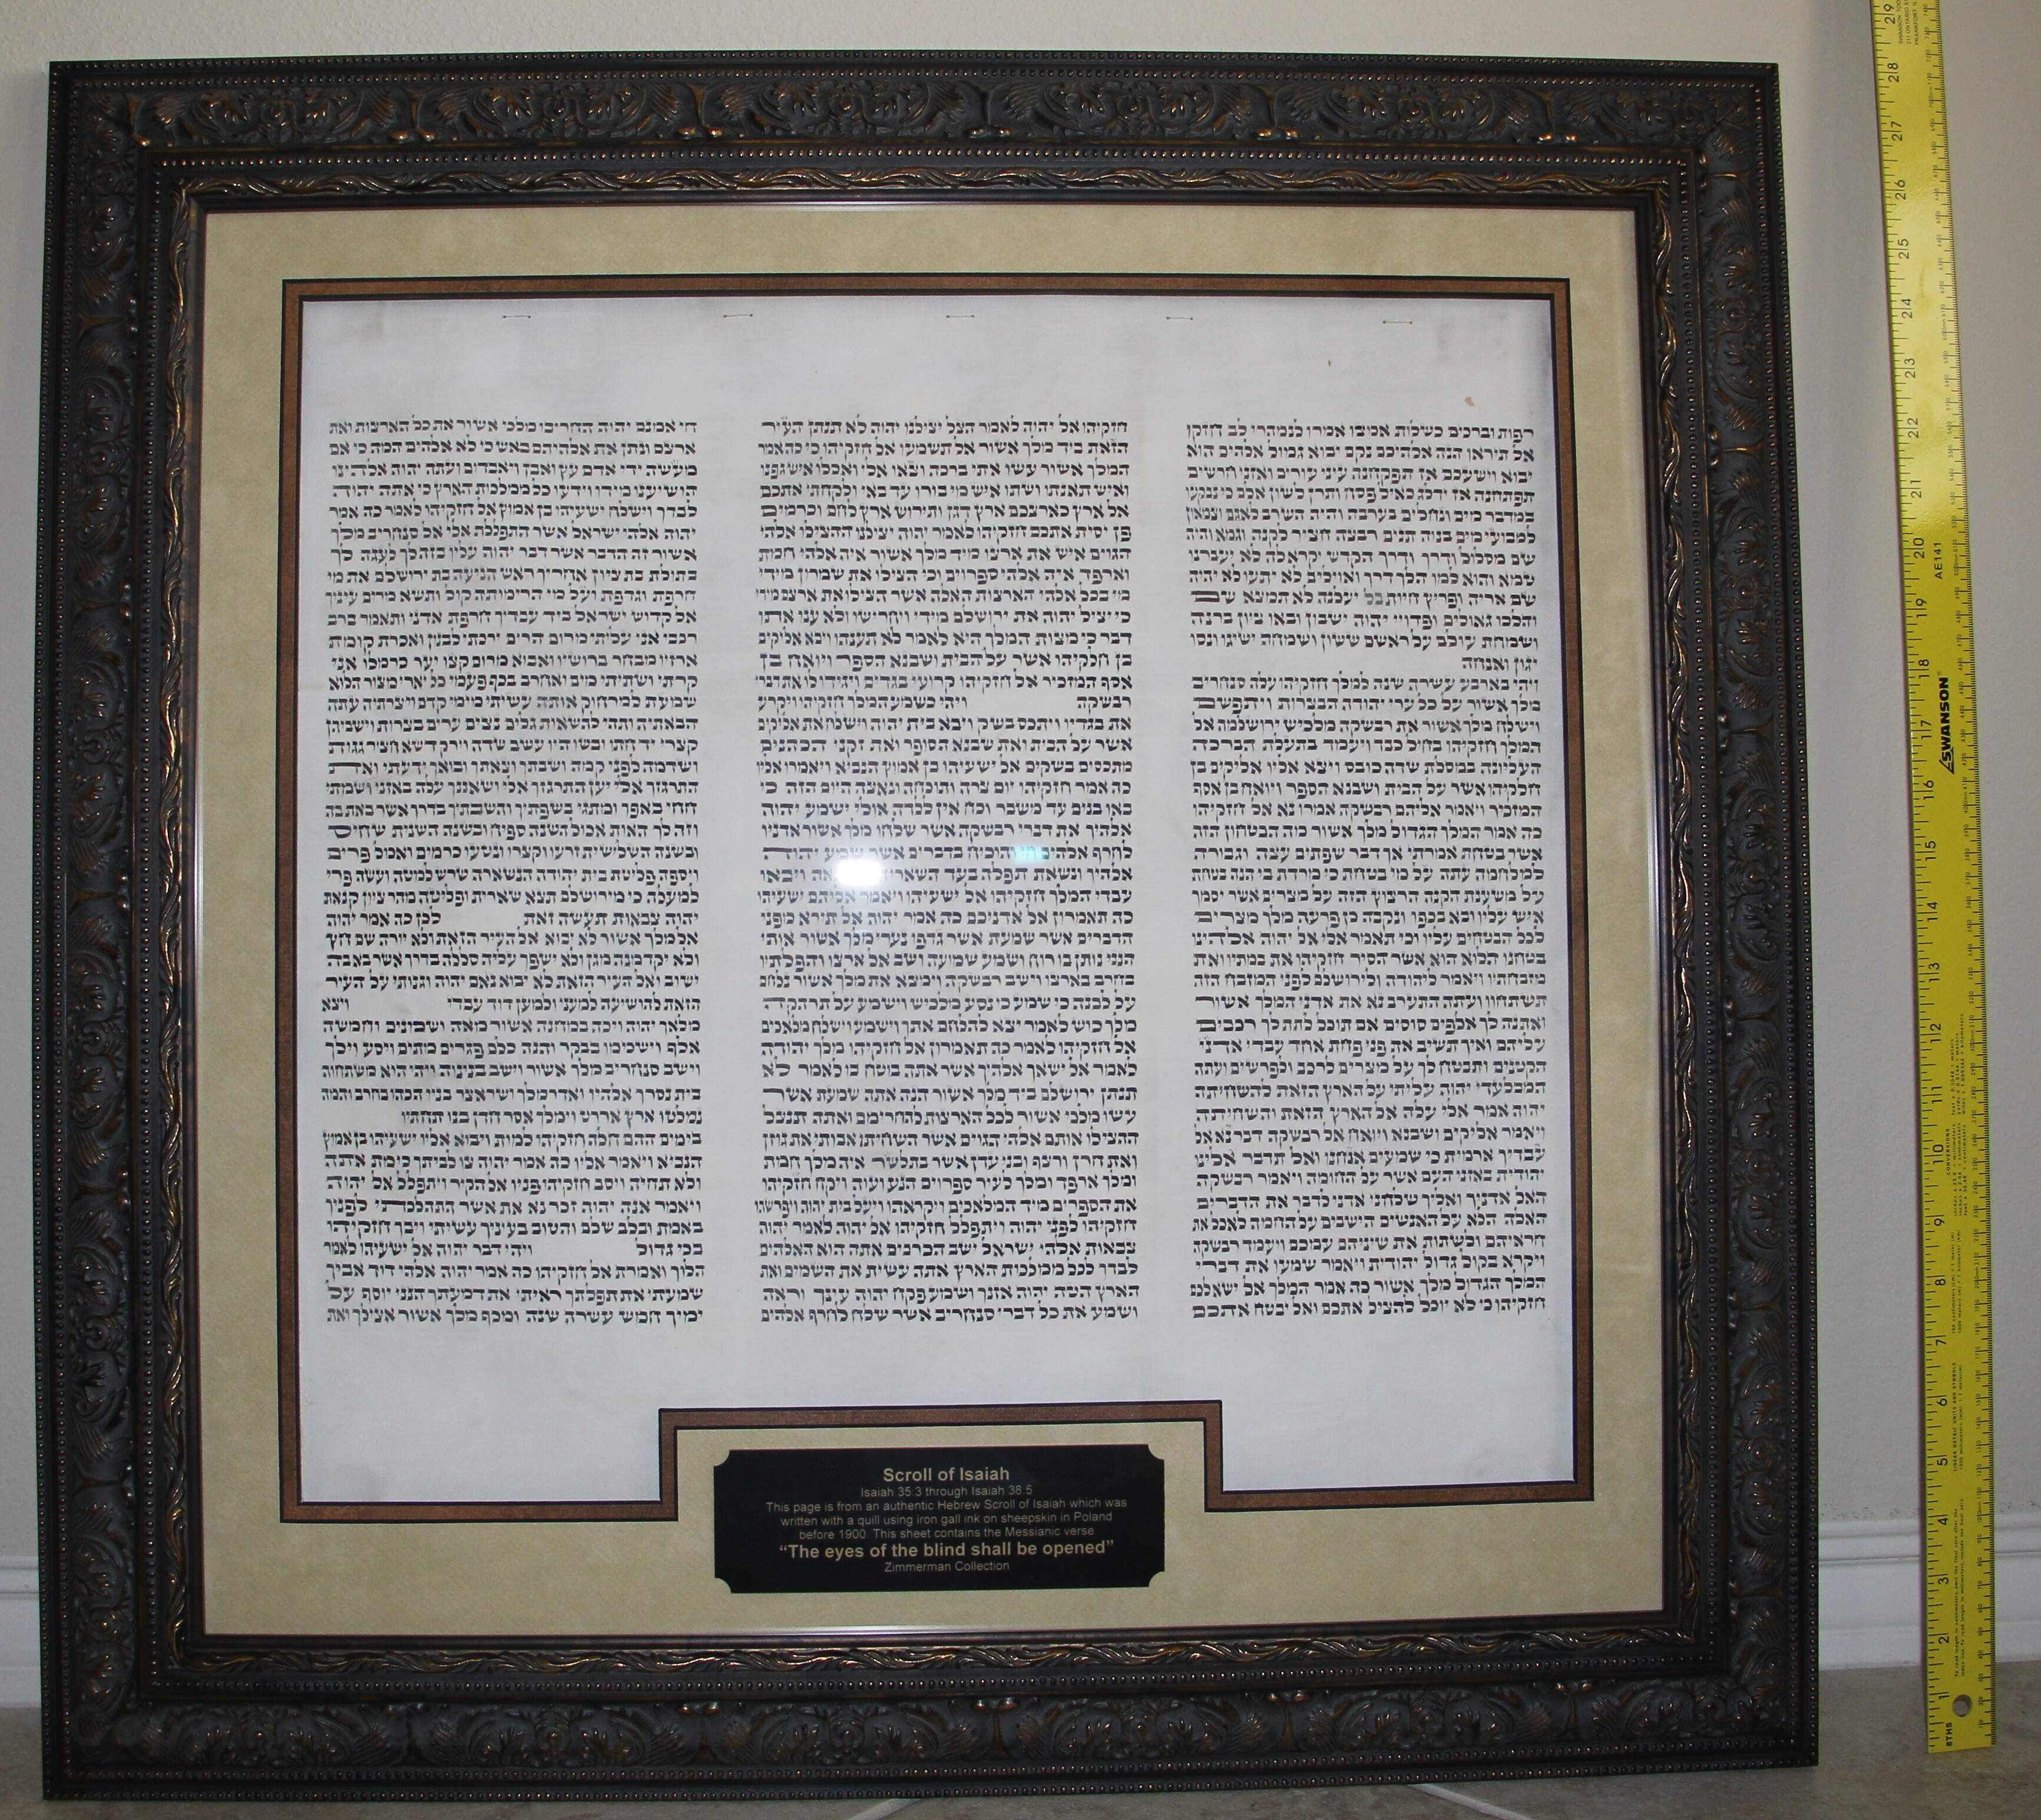 Very rare sheet from a damaged Scroll of Isaiah